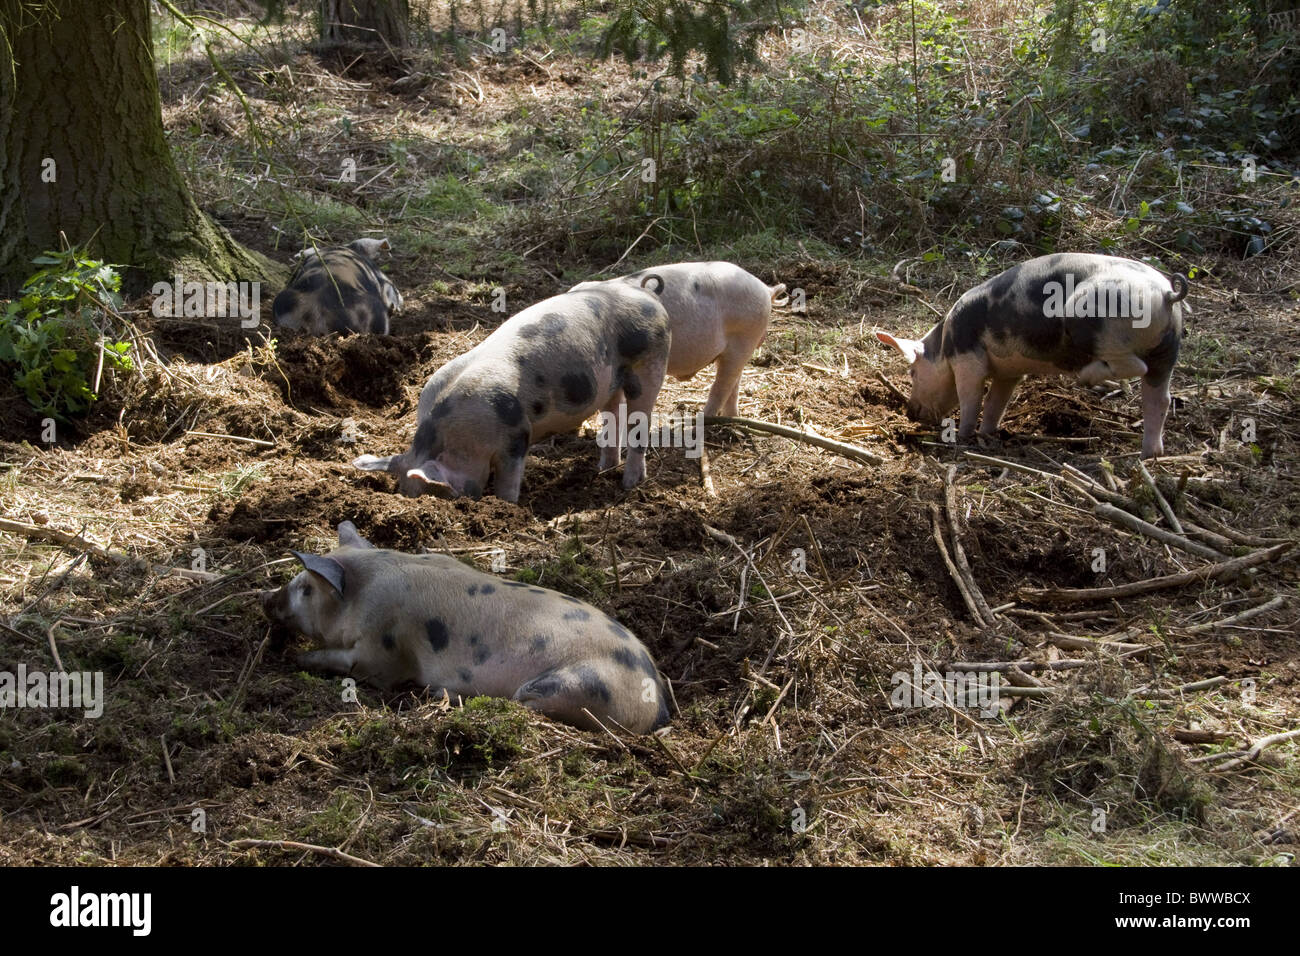 Gloucestershire old spot crossed with Duroc used - Stock Image